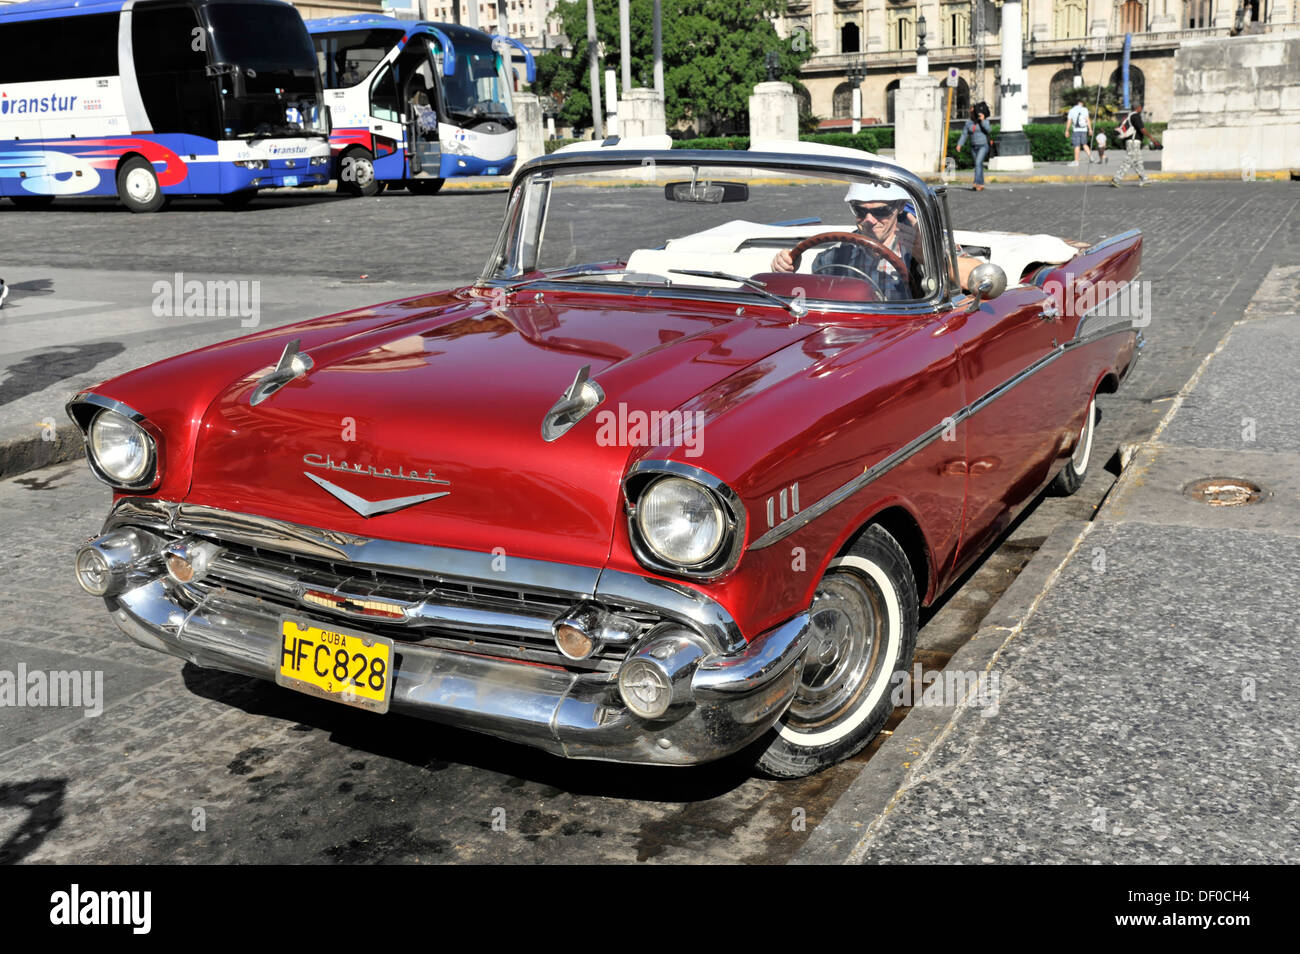 chevrolet convertible classic car from the 50s in central havana